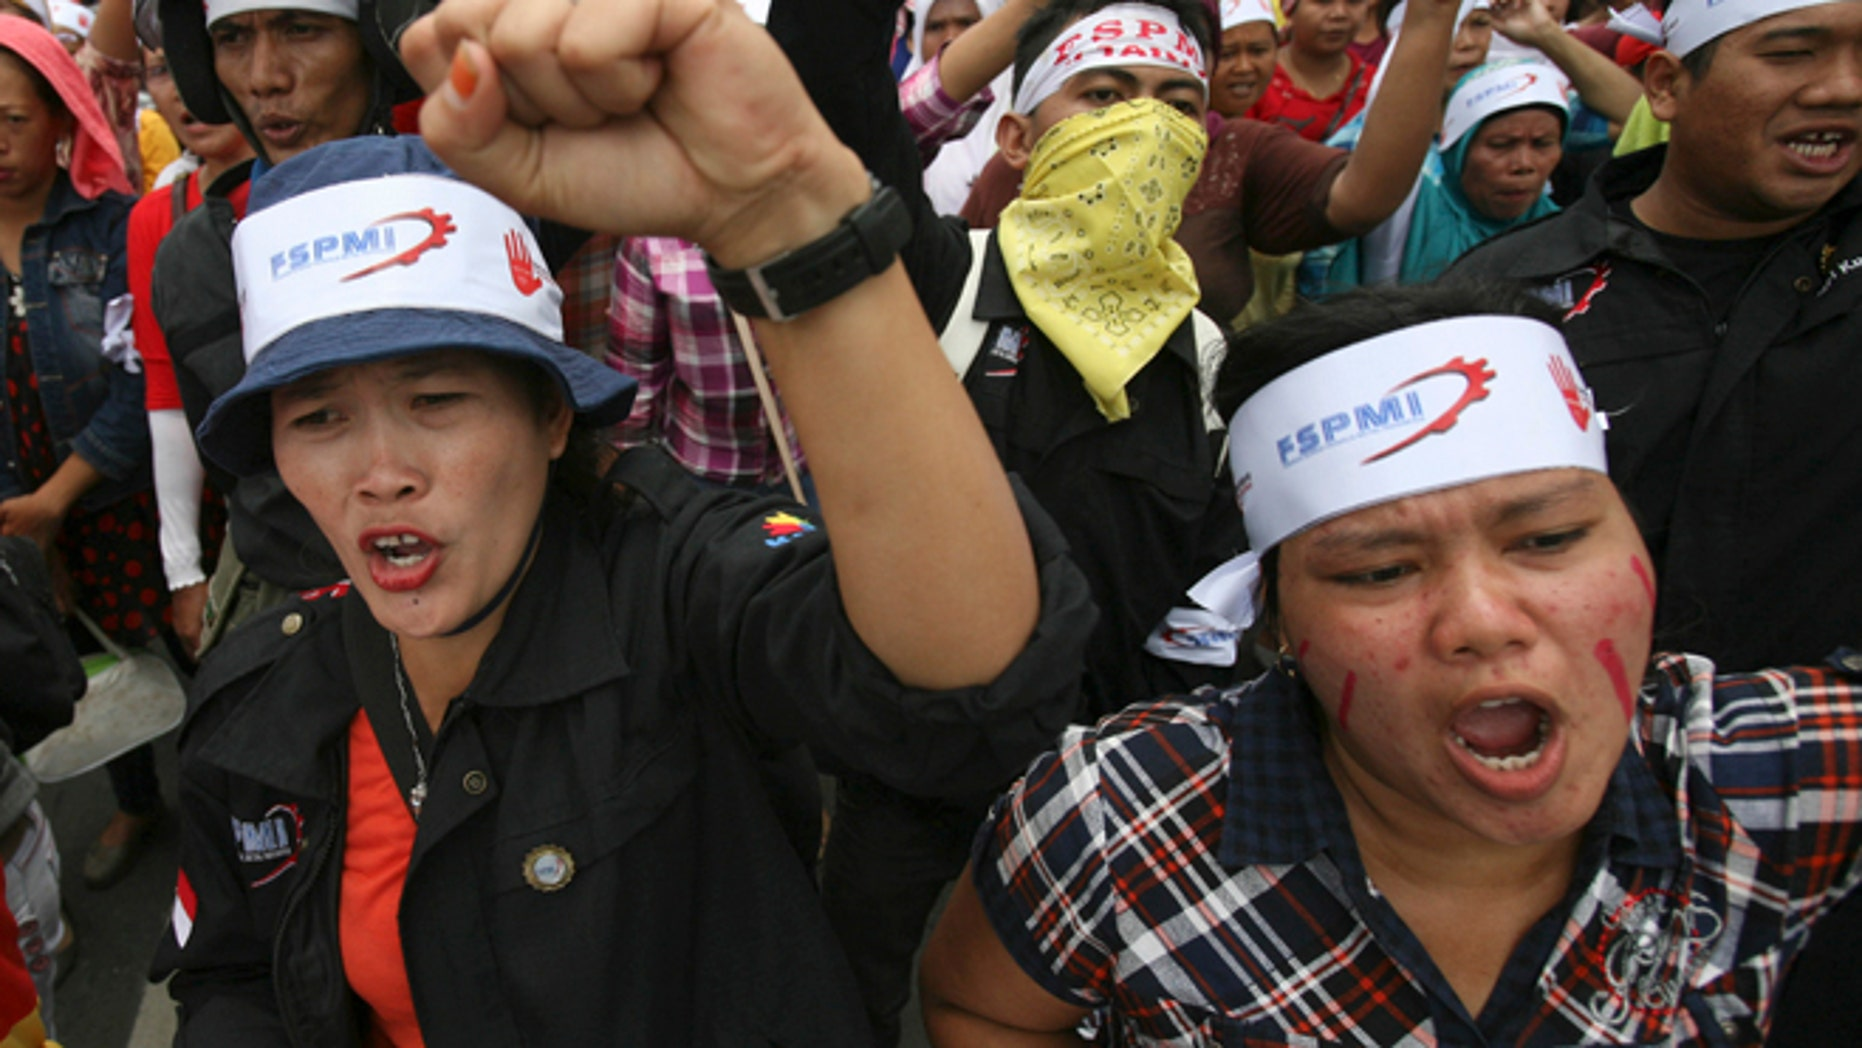 Oct. 3, 2012: Factory workers shout slogans during a protest in medan, North Sumatra, Indonesia.